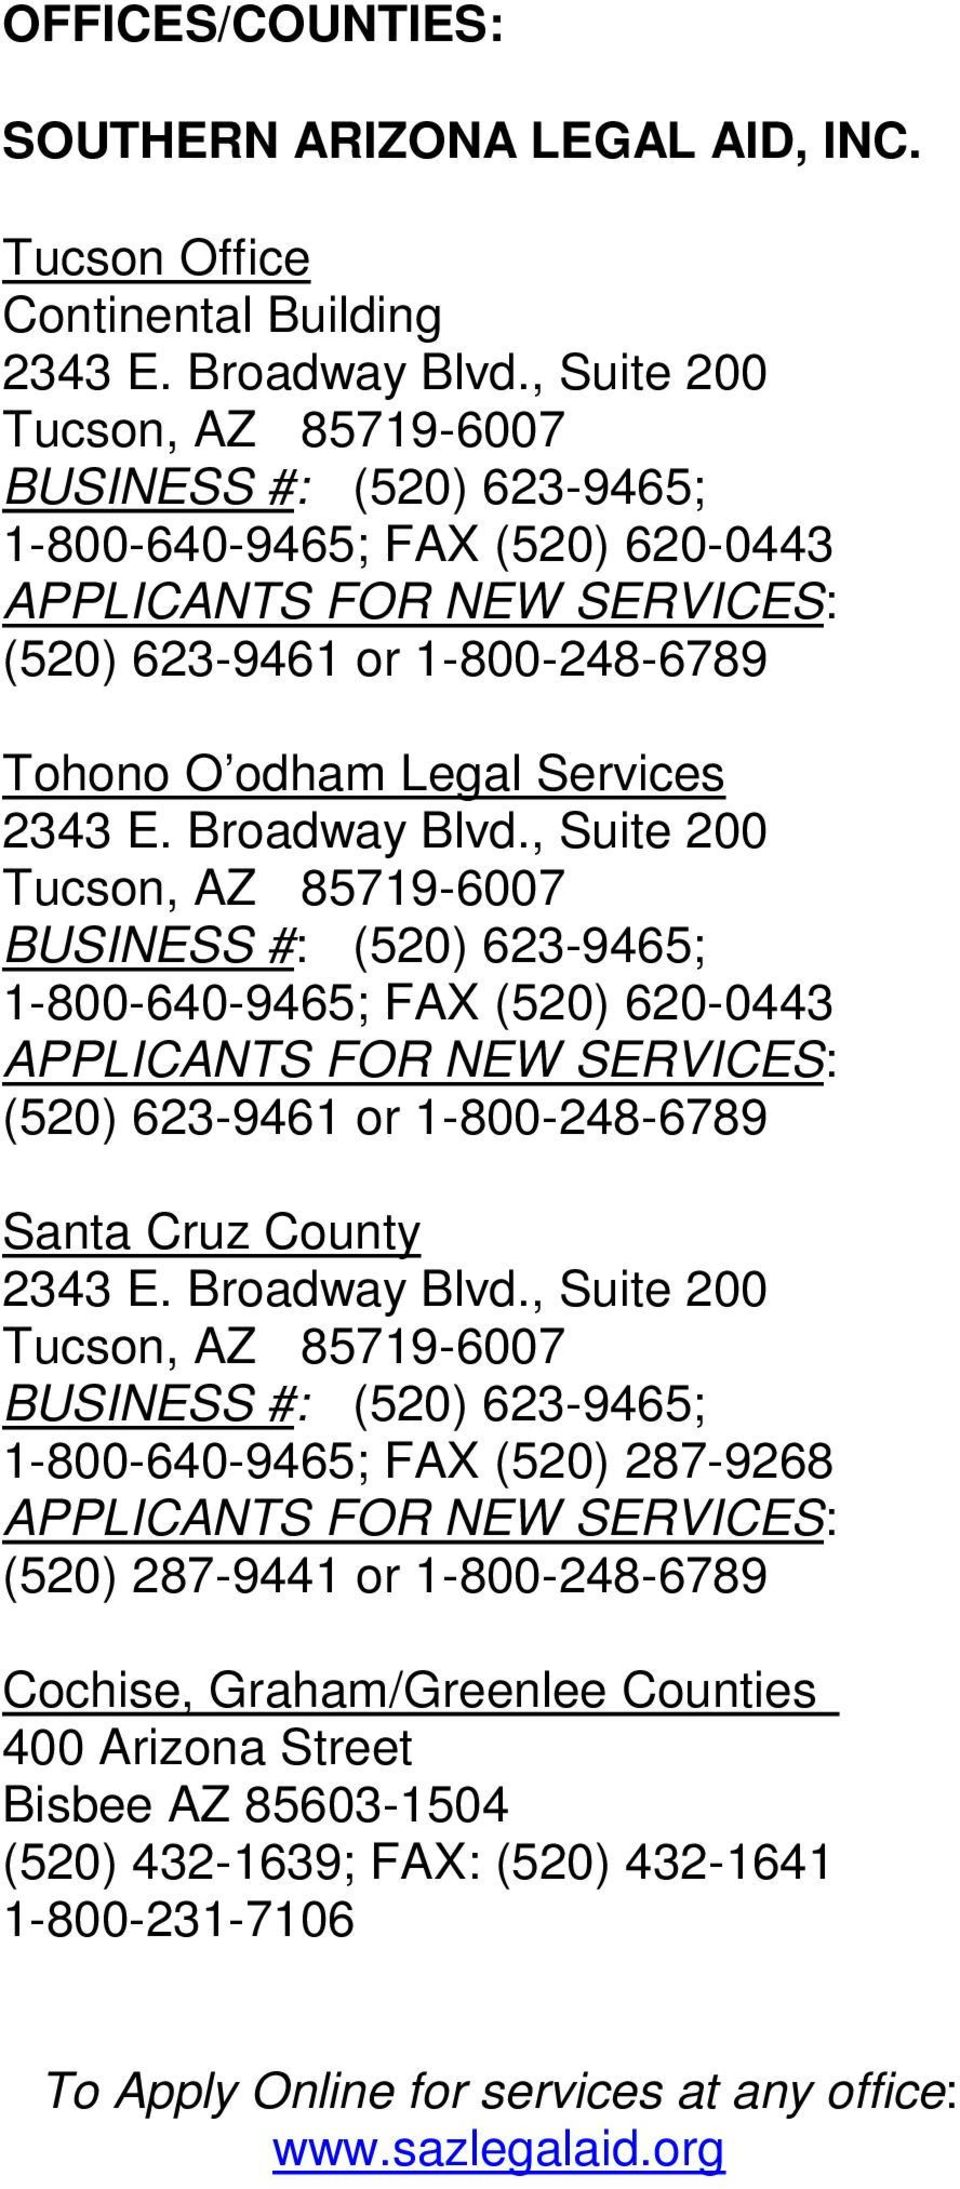 Broadway Blvd., Suite 200 Tucson, AZ 85719-6007 BUSINESS #: (520) 623-9465; 1-800-640-9465; FAX (520) 620-0443 APPLICANTS FOR NEW SERVICES: (520) 623-9461 or 1-800-248-6789 Santa Cruz County 2343 E.